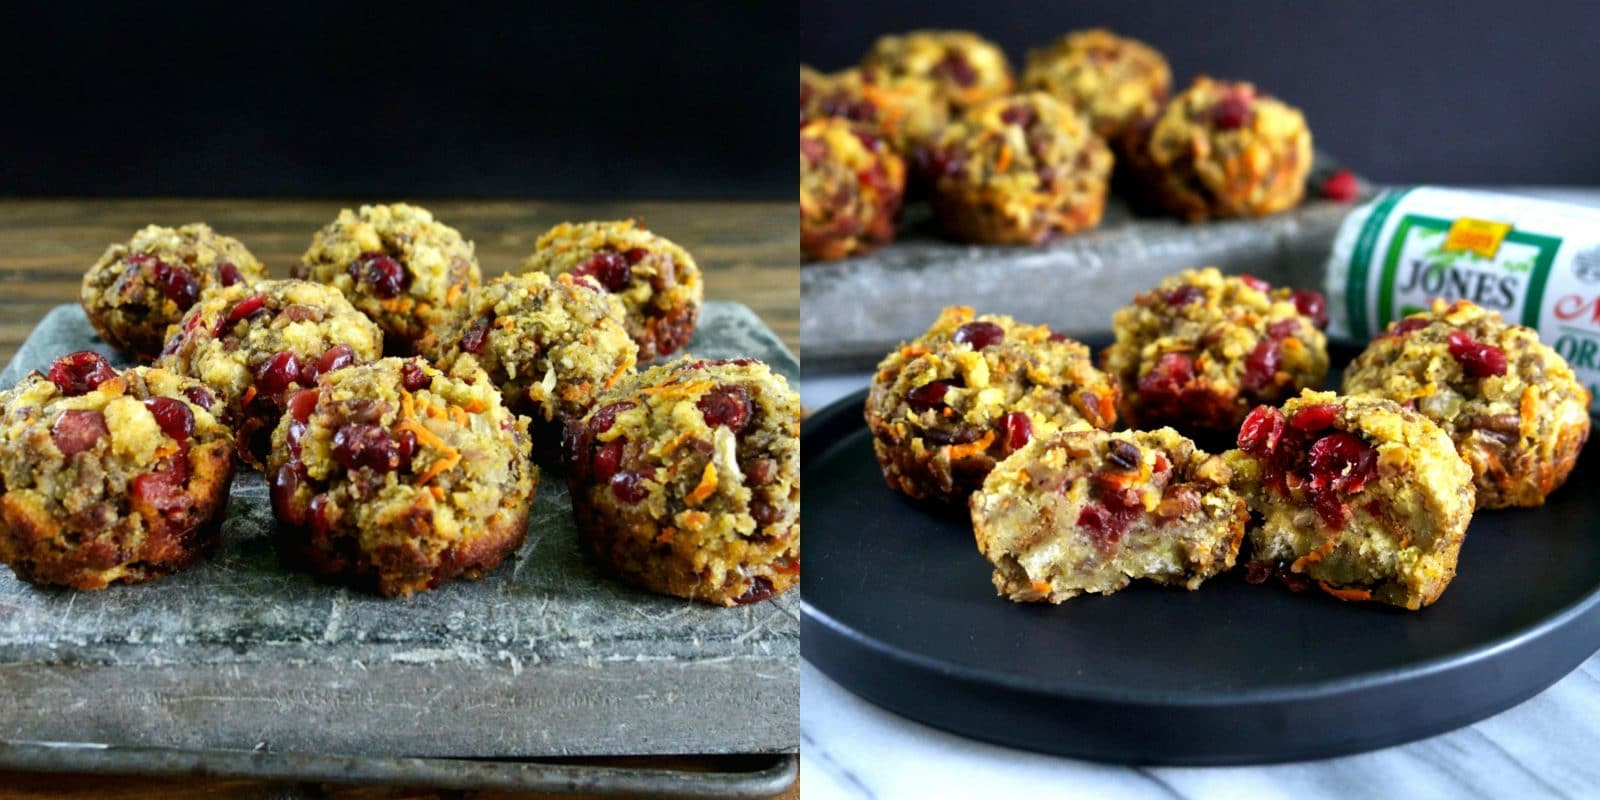 Cranberry and Cornbread Stuffing Muffins with Jones Sausage. Cornbread stuffing mixed with sausage, dried cranberries, shredded carrots & toasted pecans. Simply Sated